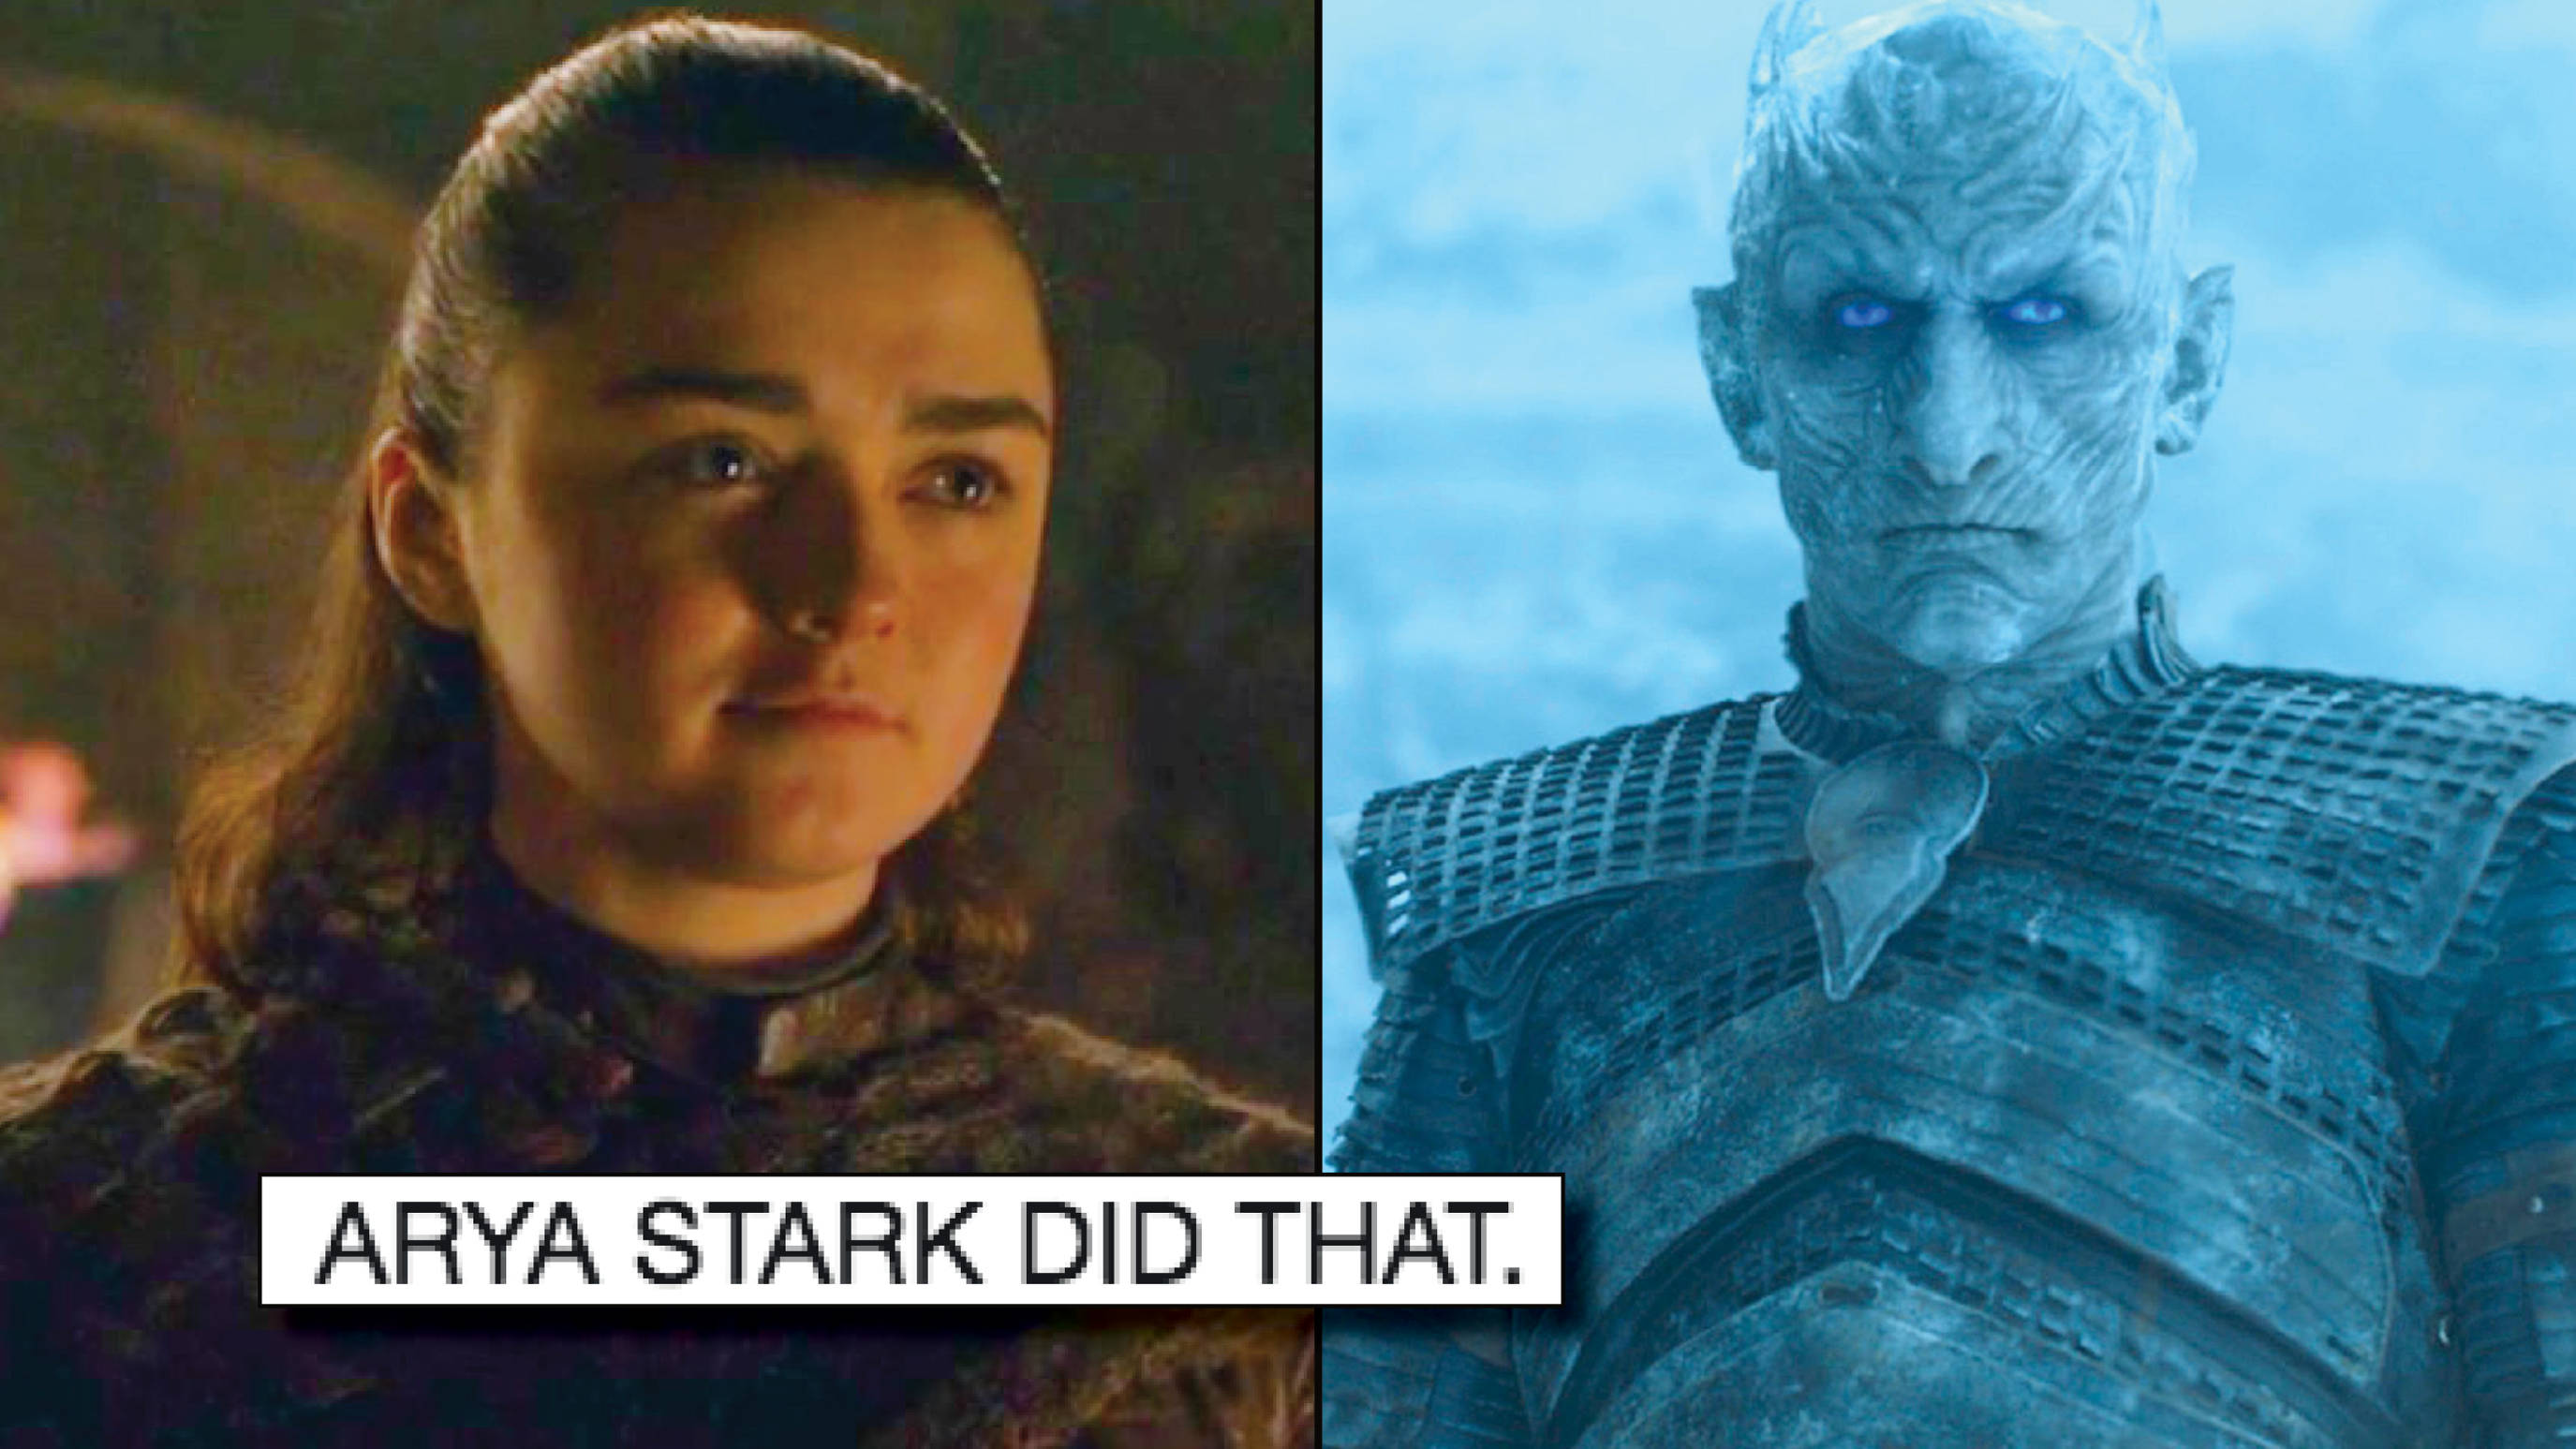 Arya Stark Killed The Night King On Game Of Thrones And The Memes